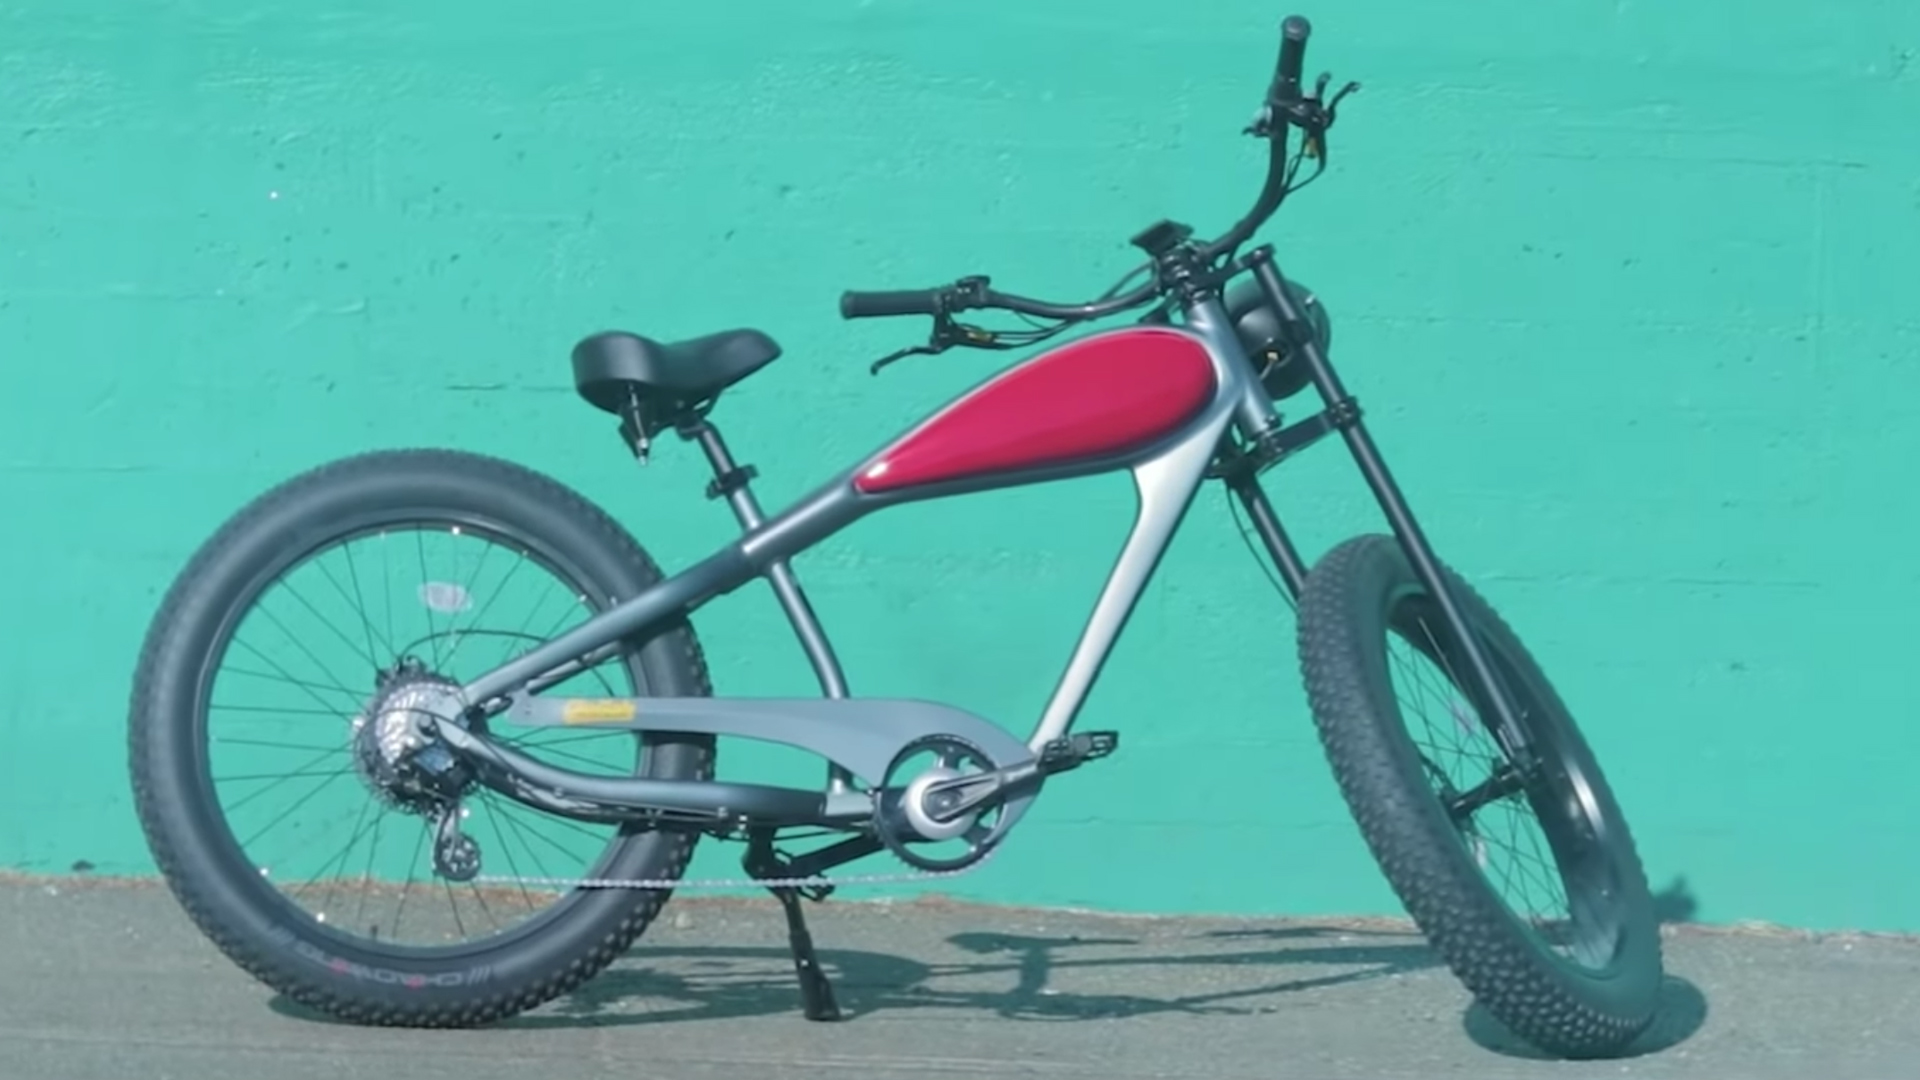 electrified-reviews-civi-bikes-cheetah-electric-bike-review-profile.jpg